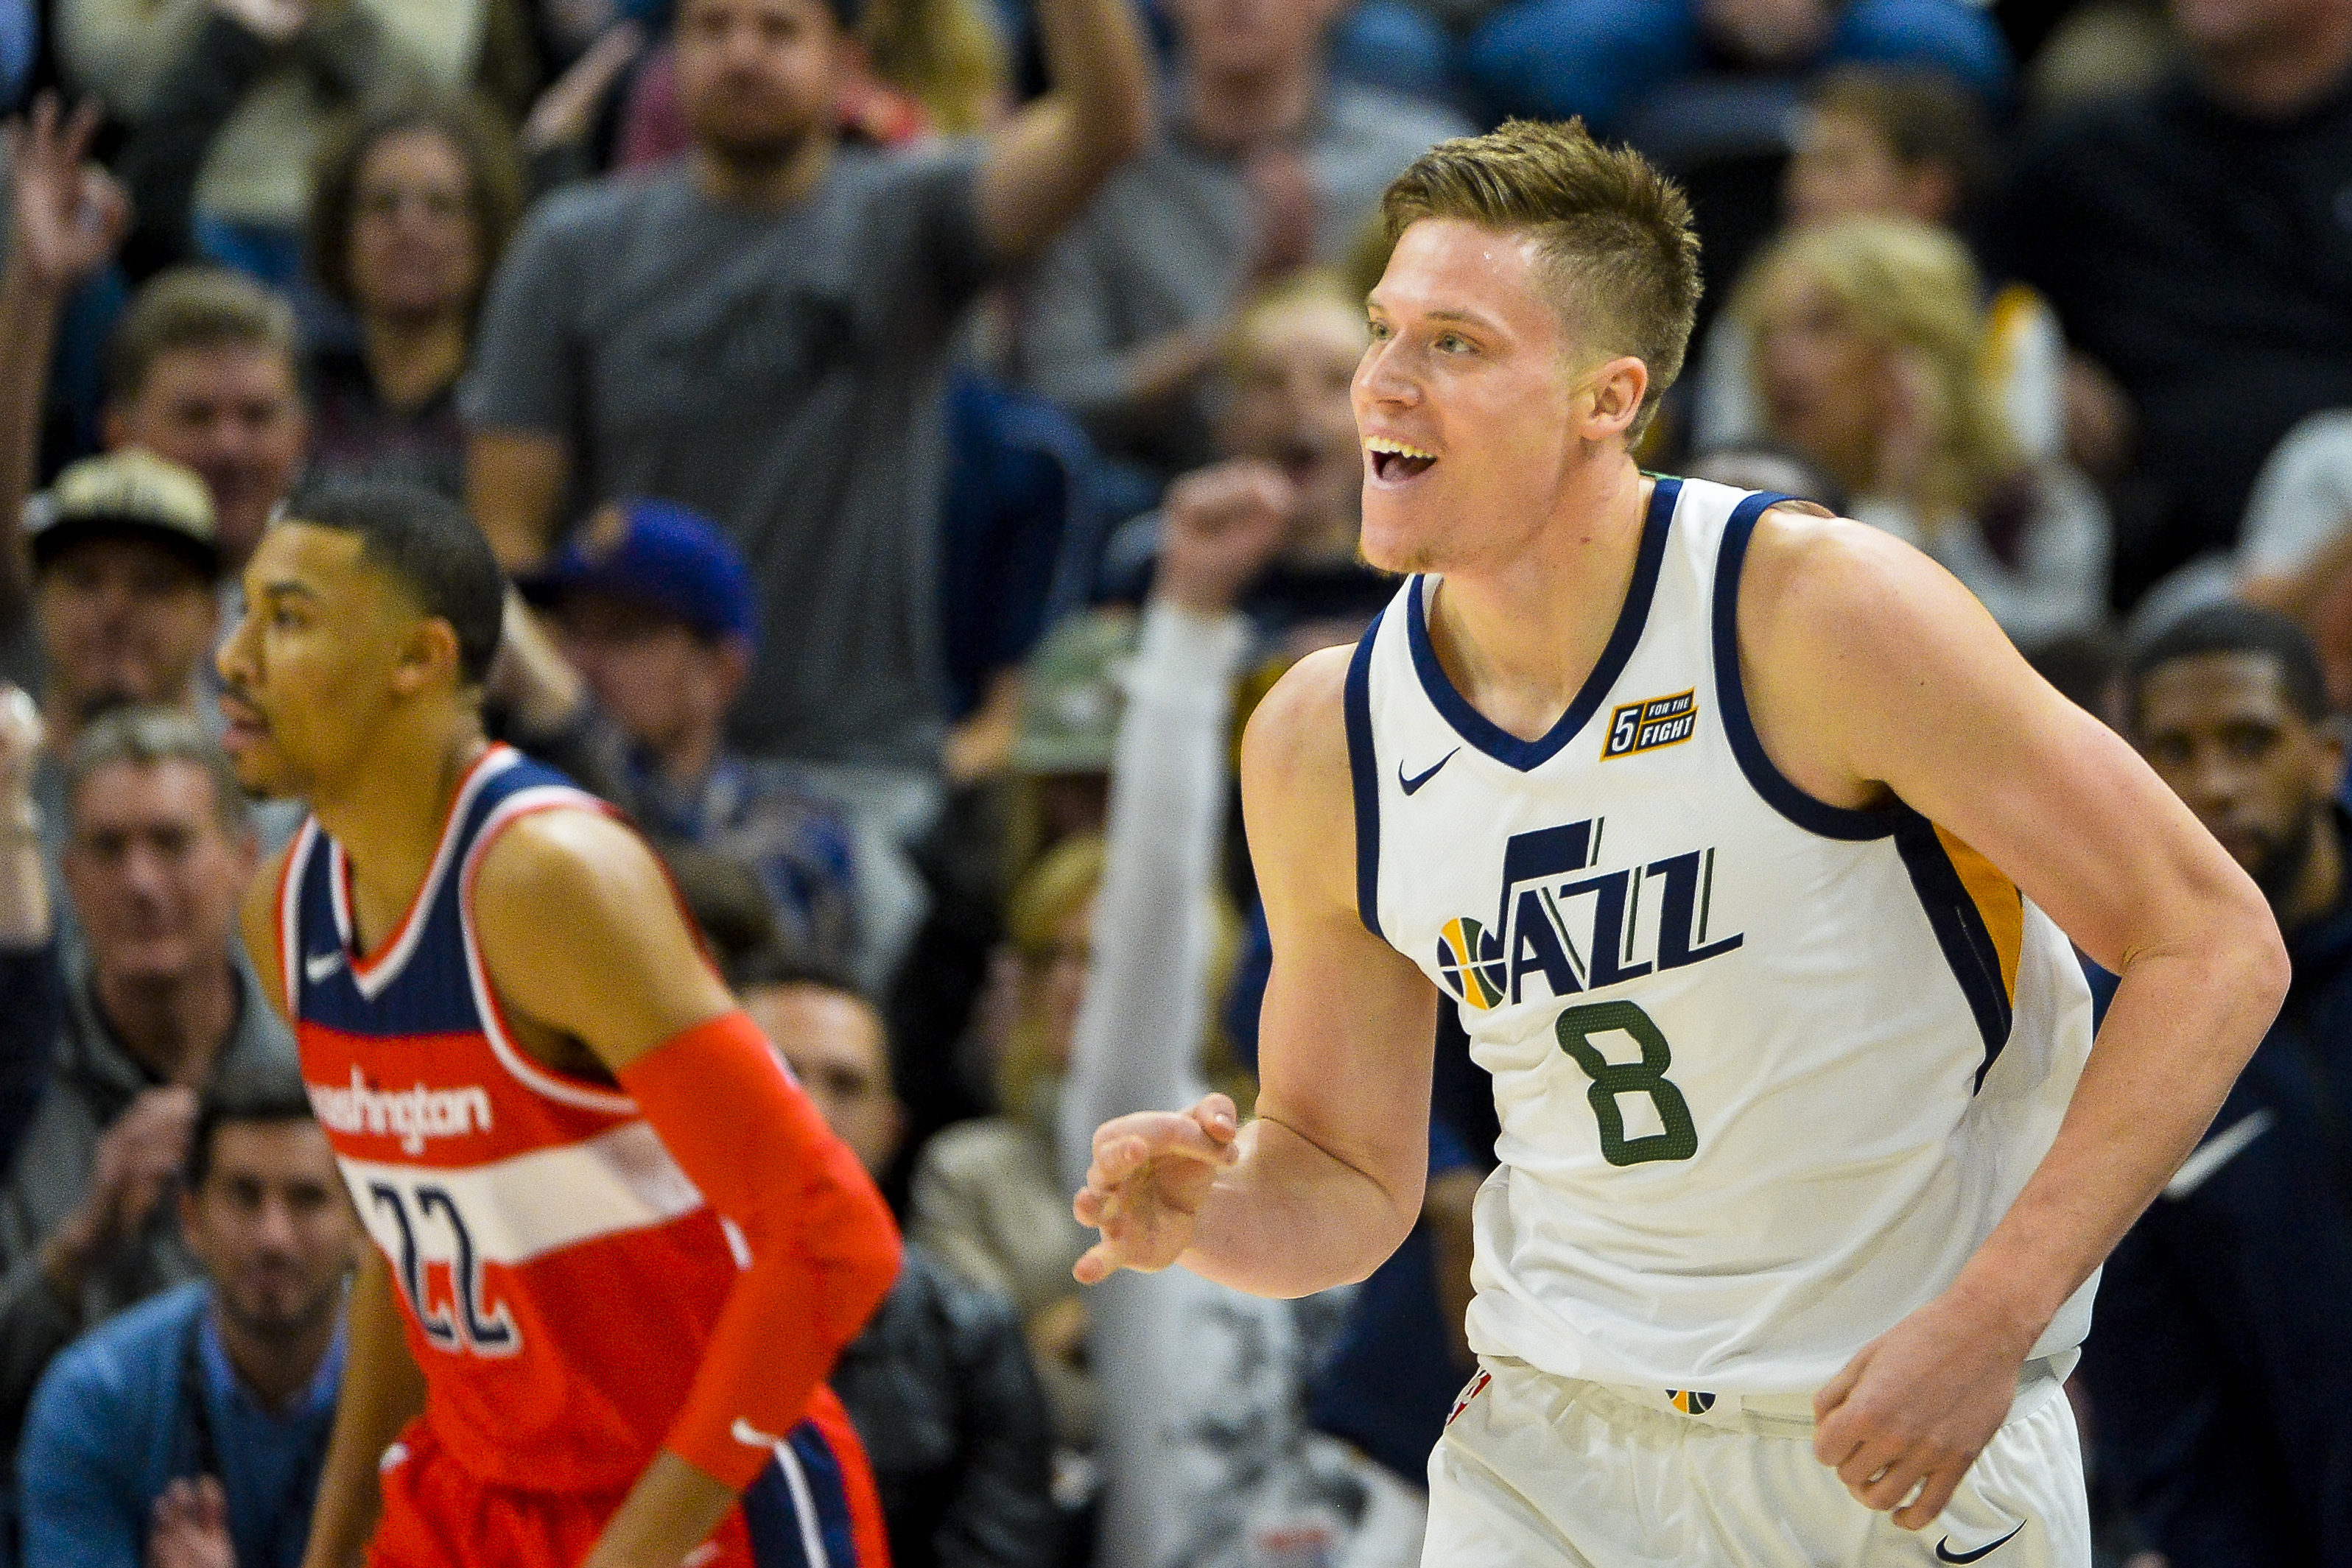 Utah Jazz forward Jonas Jerebko (8) celebrates after scoring against the Washington Wizards in the first half during of an NBA basketball game Monday, Dec. 4, 2017, in Salt Lake City. (AP Photo/Alex Goodlett)